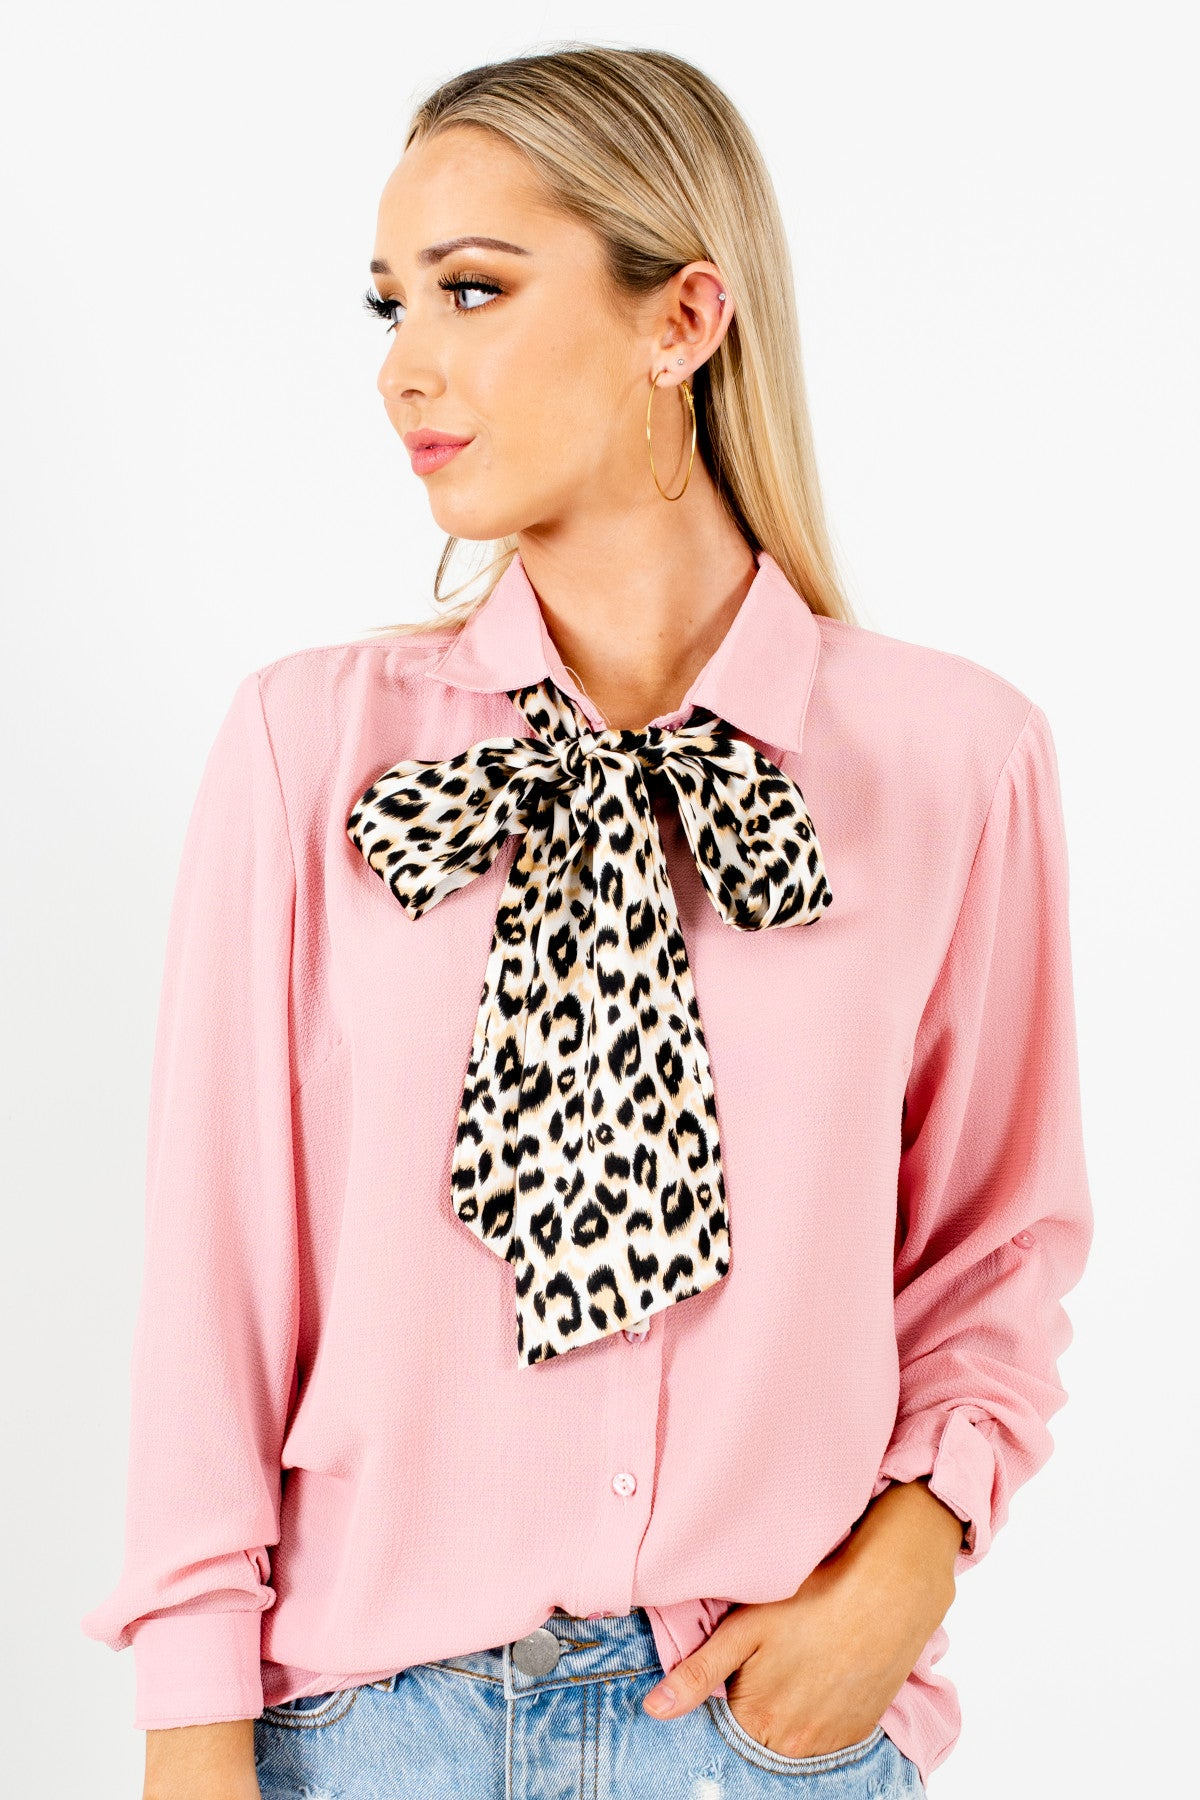 Pink Button Up Shirt with White Gold Black Leopard Print Tie